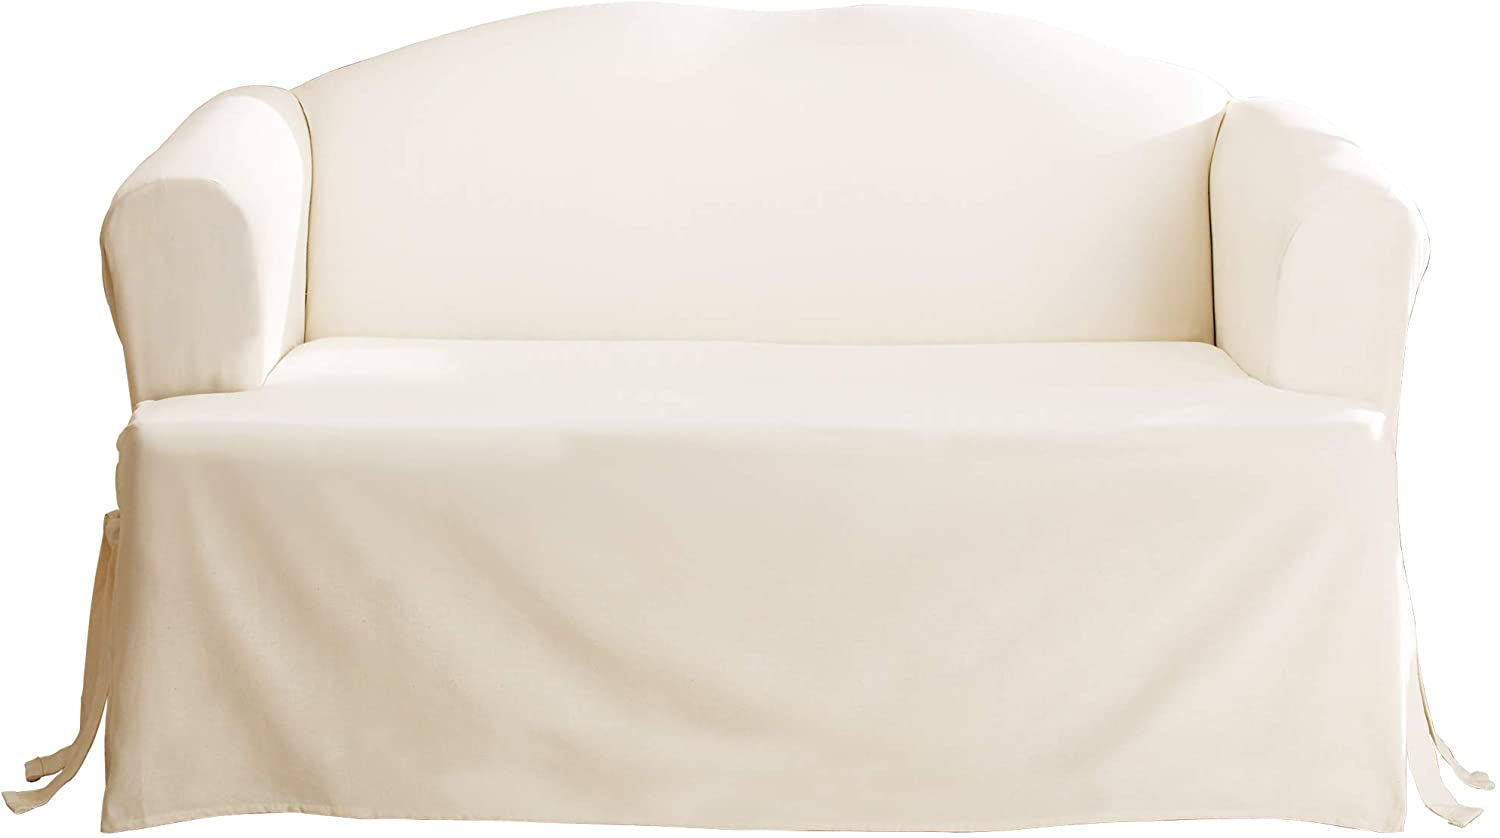 SureFit Home Décor SF28610 Duck Solid T-Cushion Loveseat Cover, Relaxed Fit, 100% Cotton, Machine Washable, One Piece, Natural Color